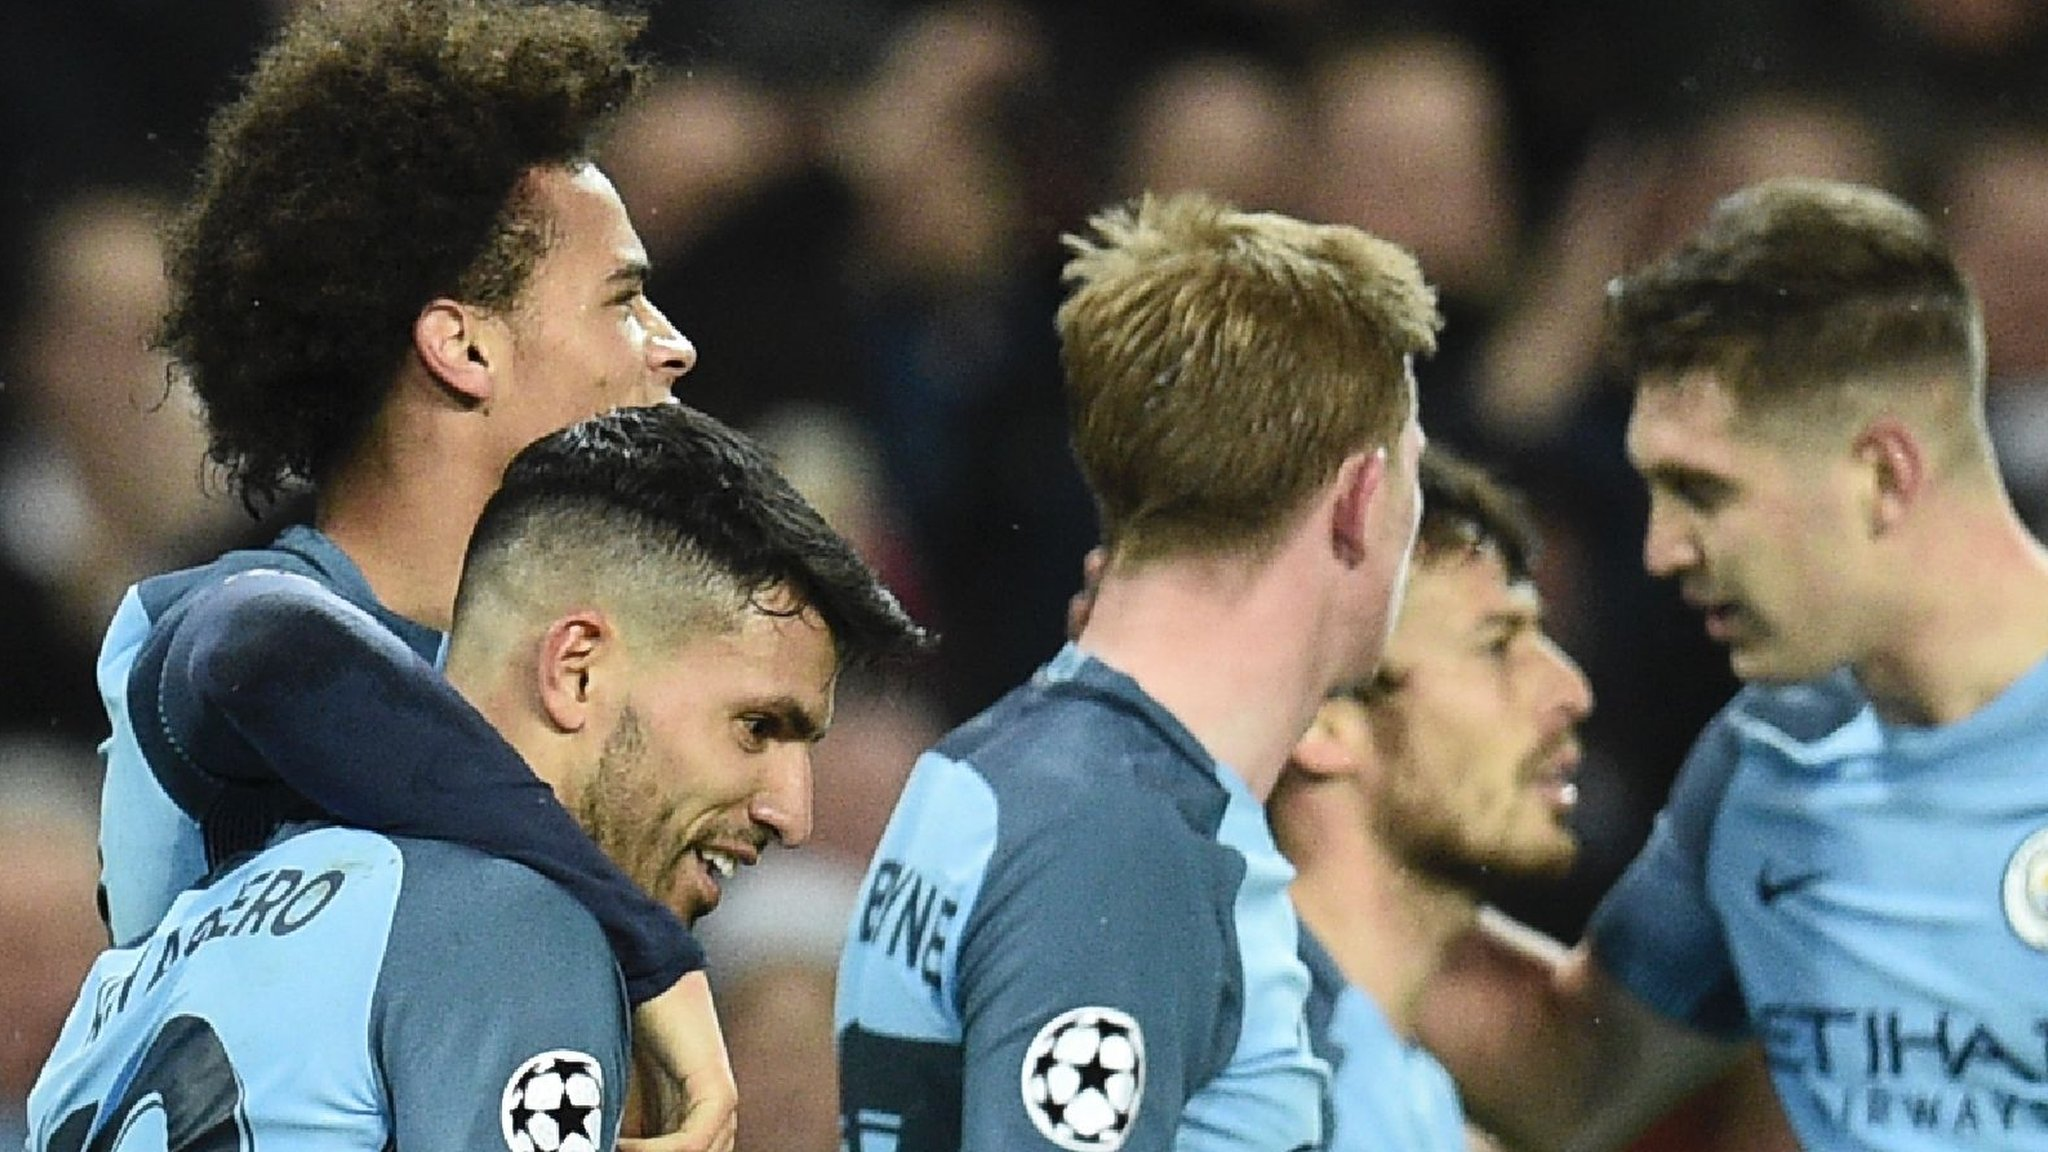 Champions League: Man City must score at Monaco or go out, says Pep Guardiola